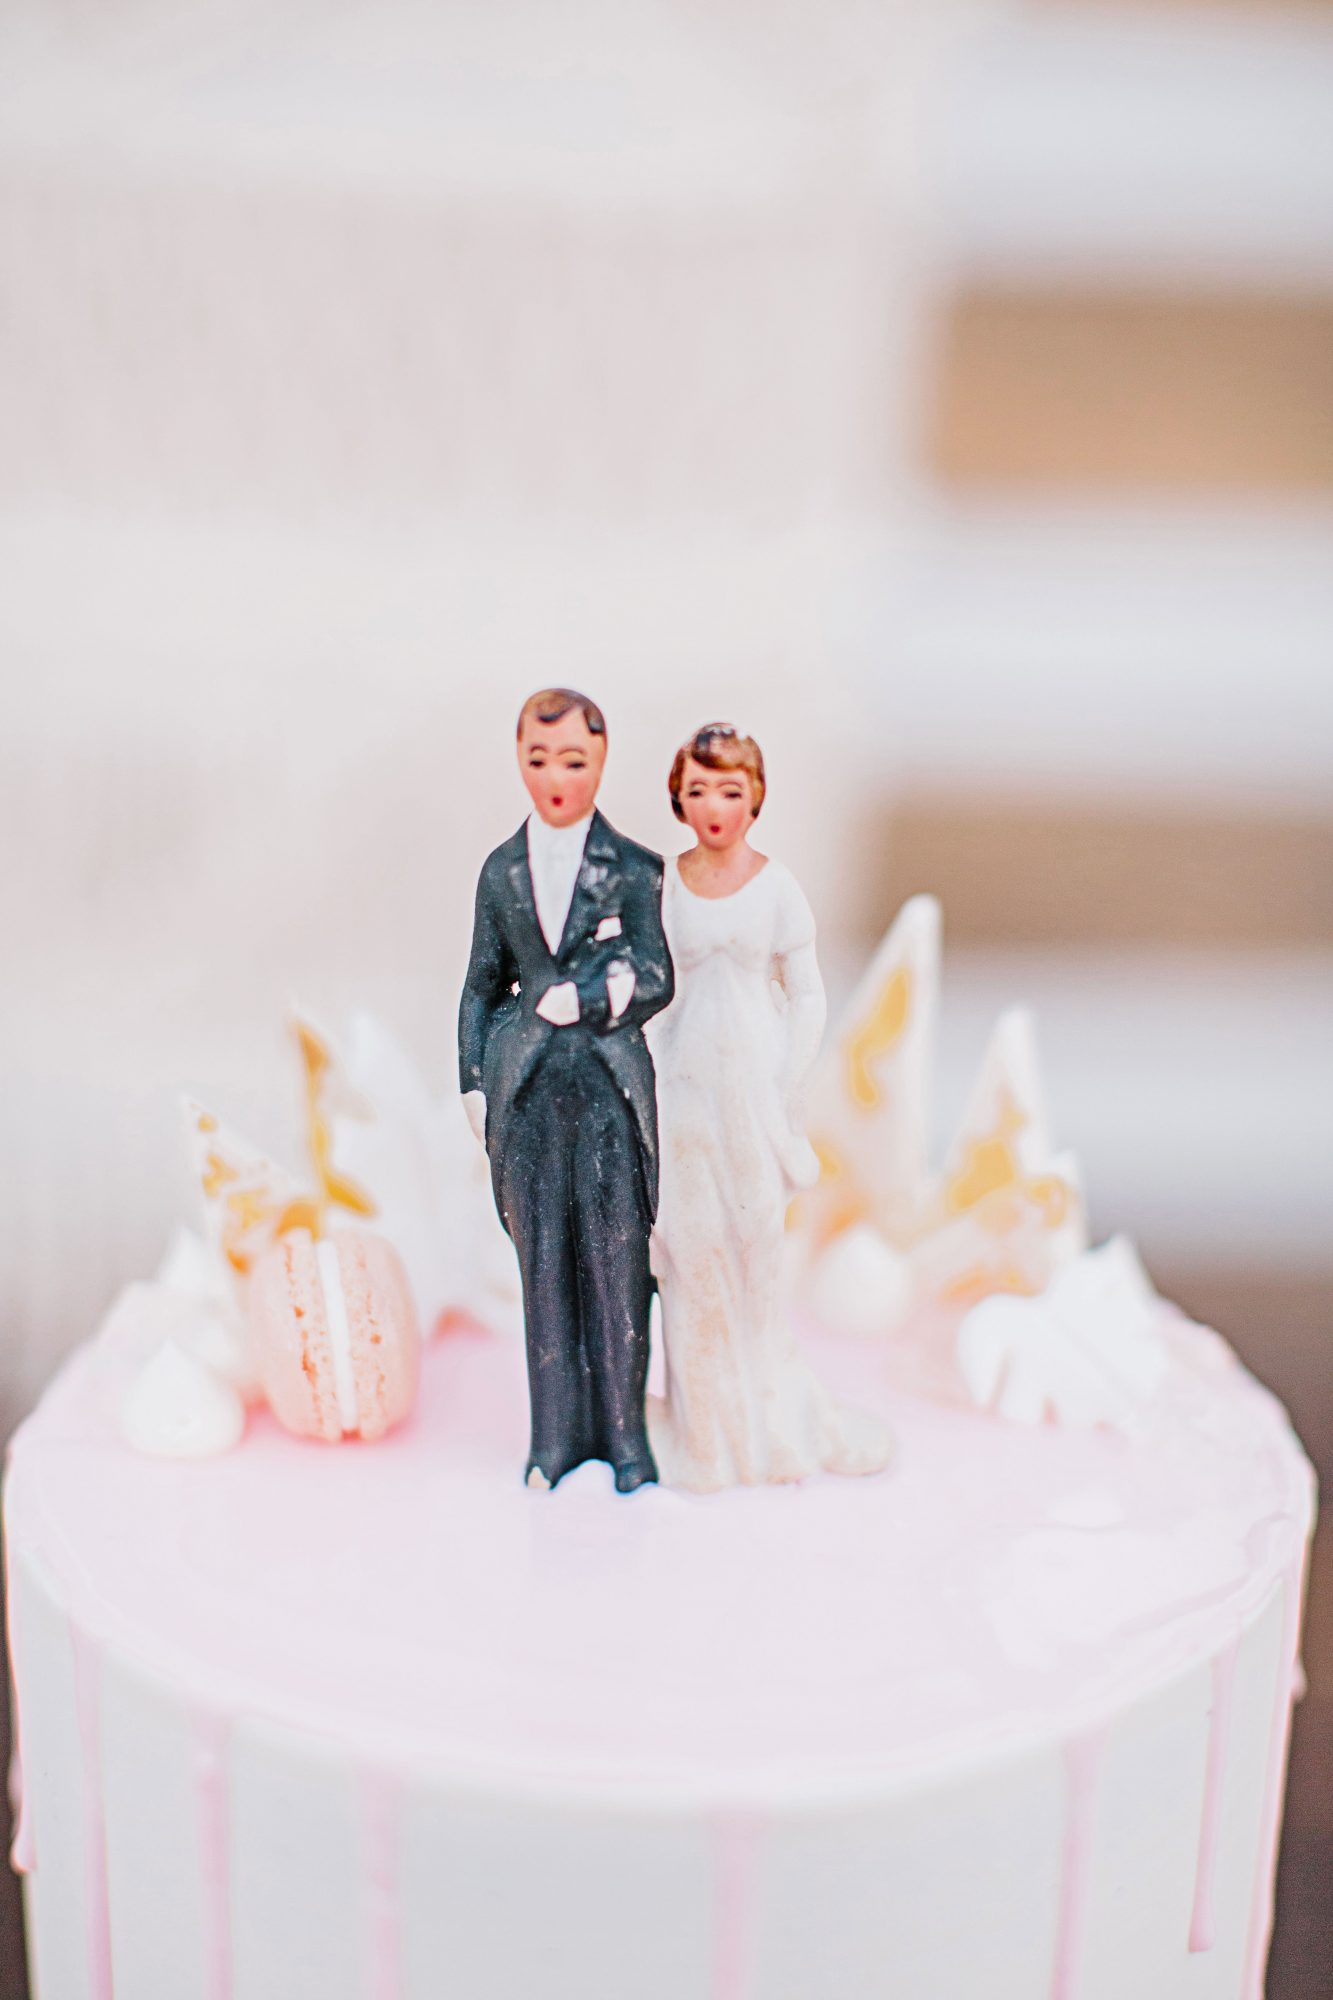 stephanie jared wedding cake topper